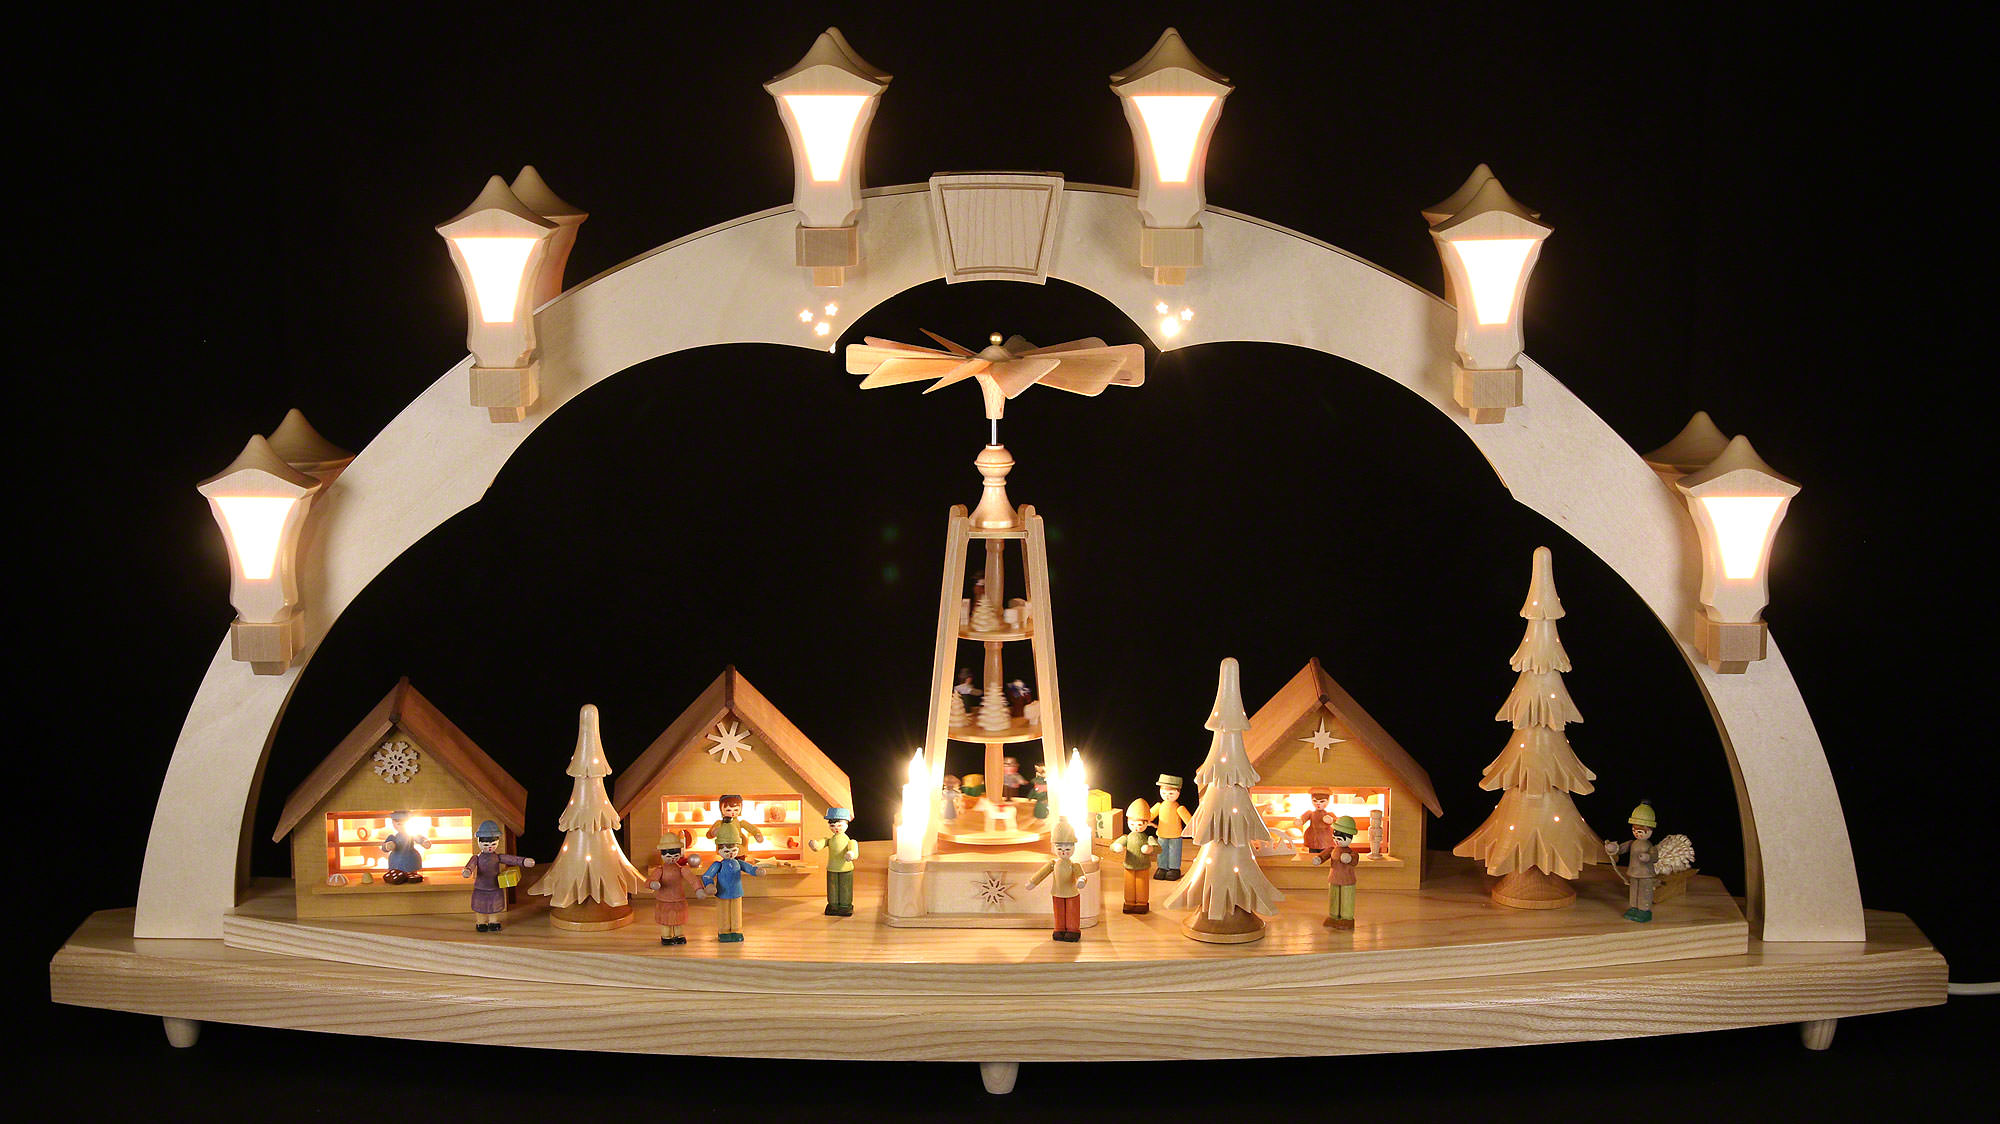 candle arch christmas fair 41x17in 80x43cm by richard. Black Bedroom Furniture Sets. Home Design Ideas